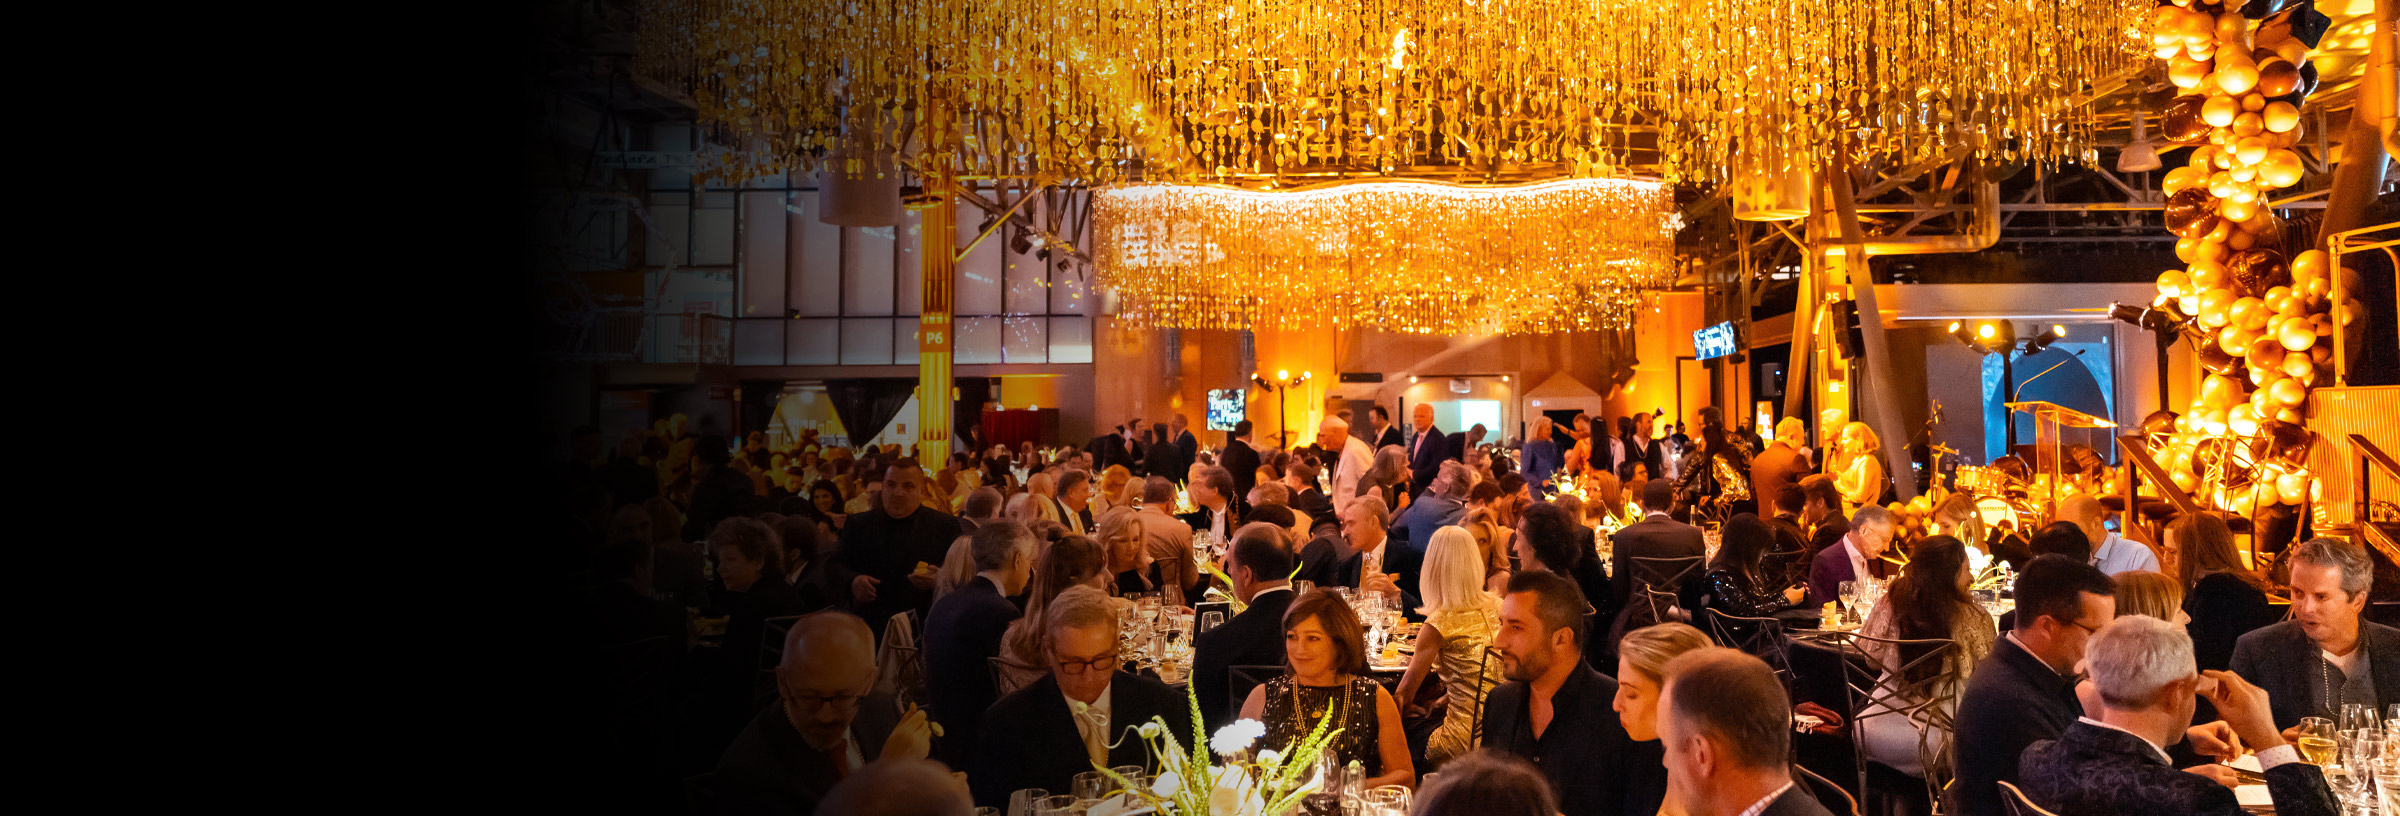 View of people dining at an event